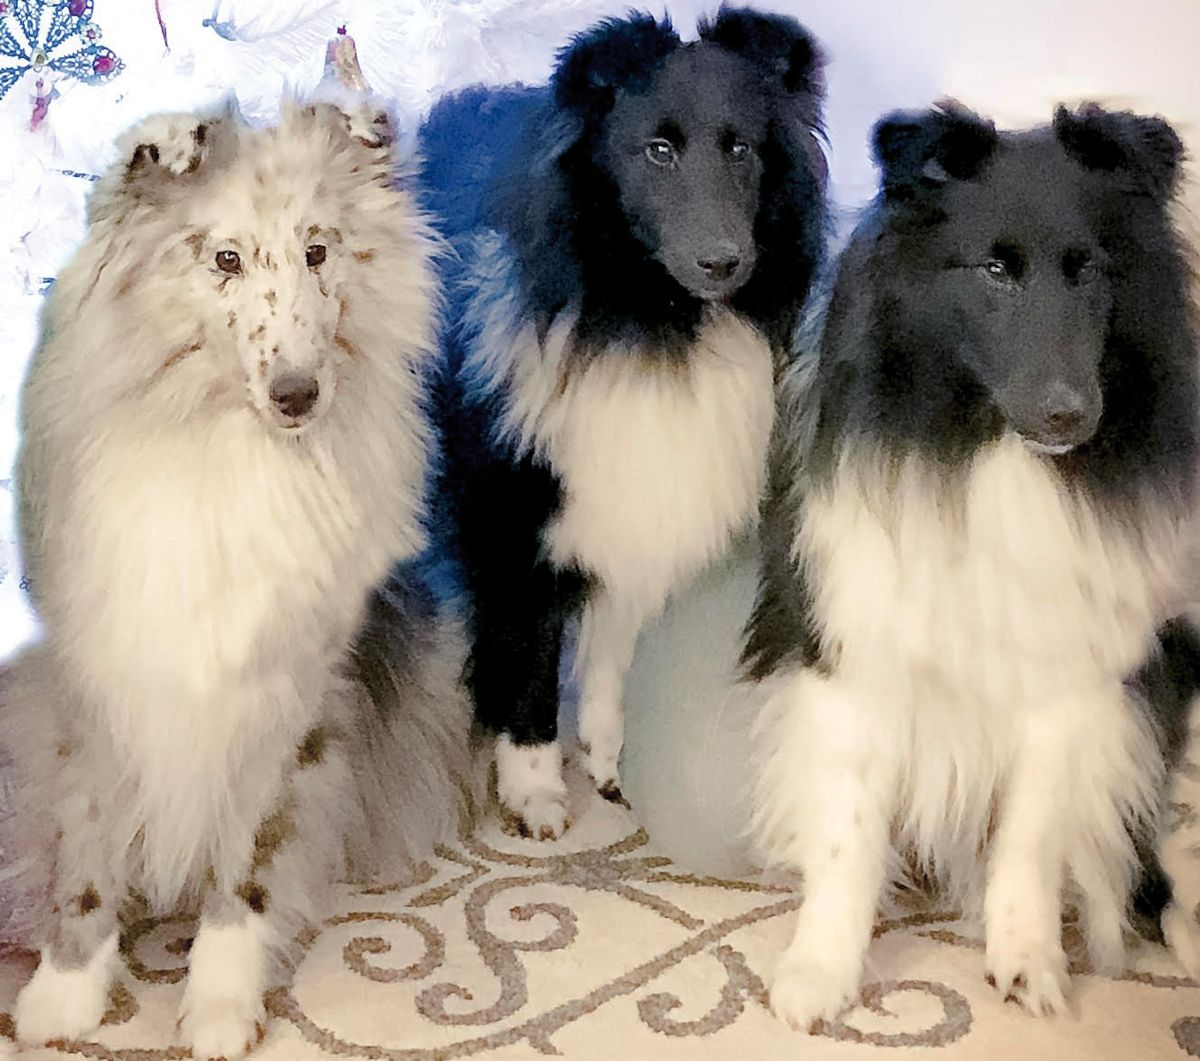 The Shetland Sheepdog on the left displays the merle coloration, which is found most frequently in herding breeds. However, unfortunately for those who may wish to introduce the color into their lines, many of the herding breeds can also carry the MDR1 (multi-drug resistance 1) mutation.